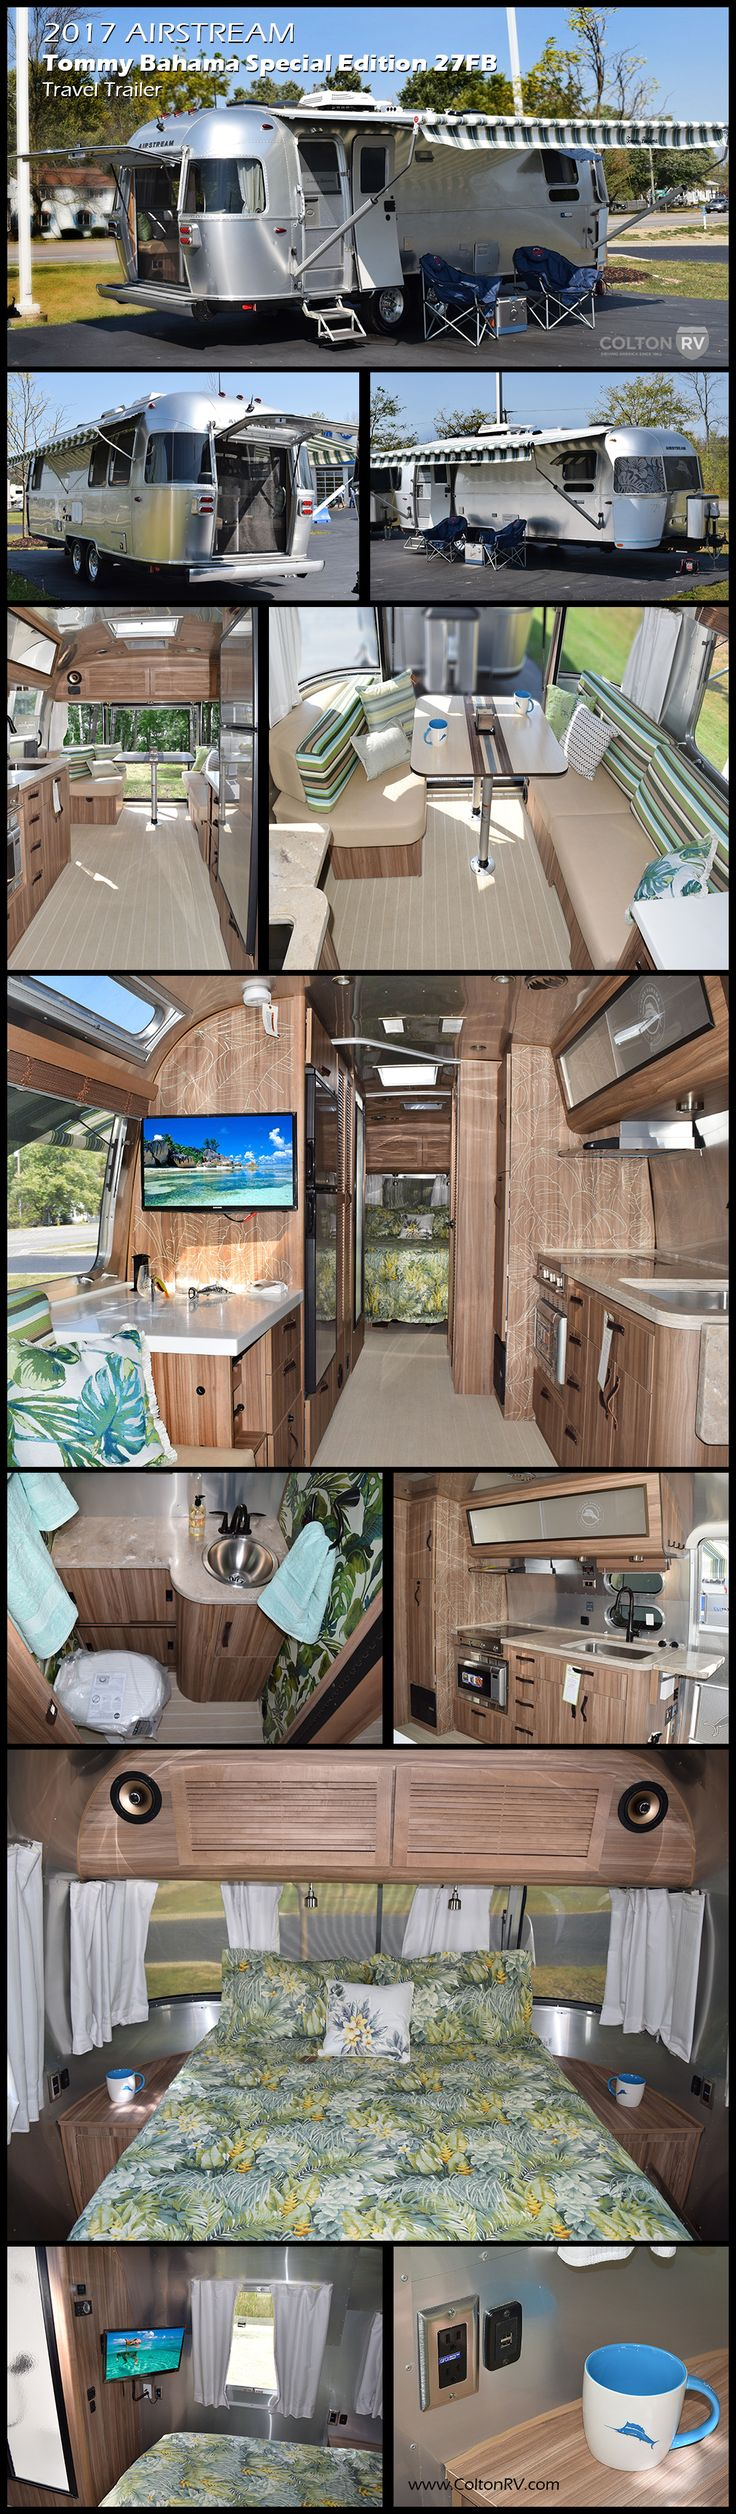 Two free spirited iconic american brands airstream and tommy bahama join together to create this elegant special edition travel trailer